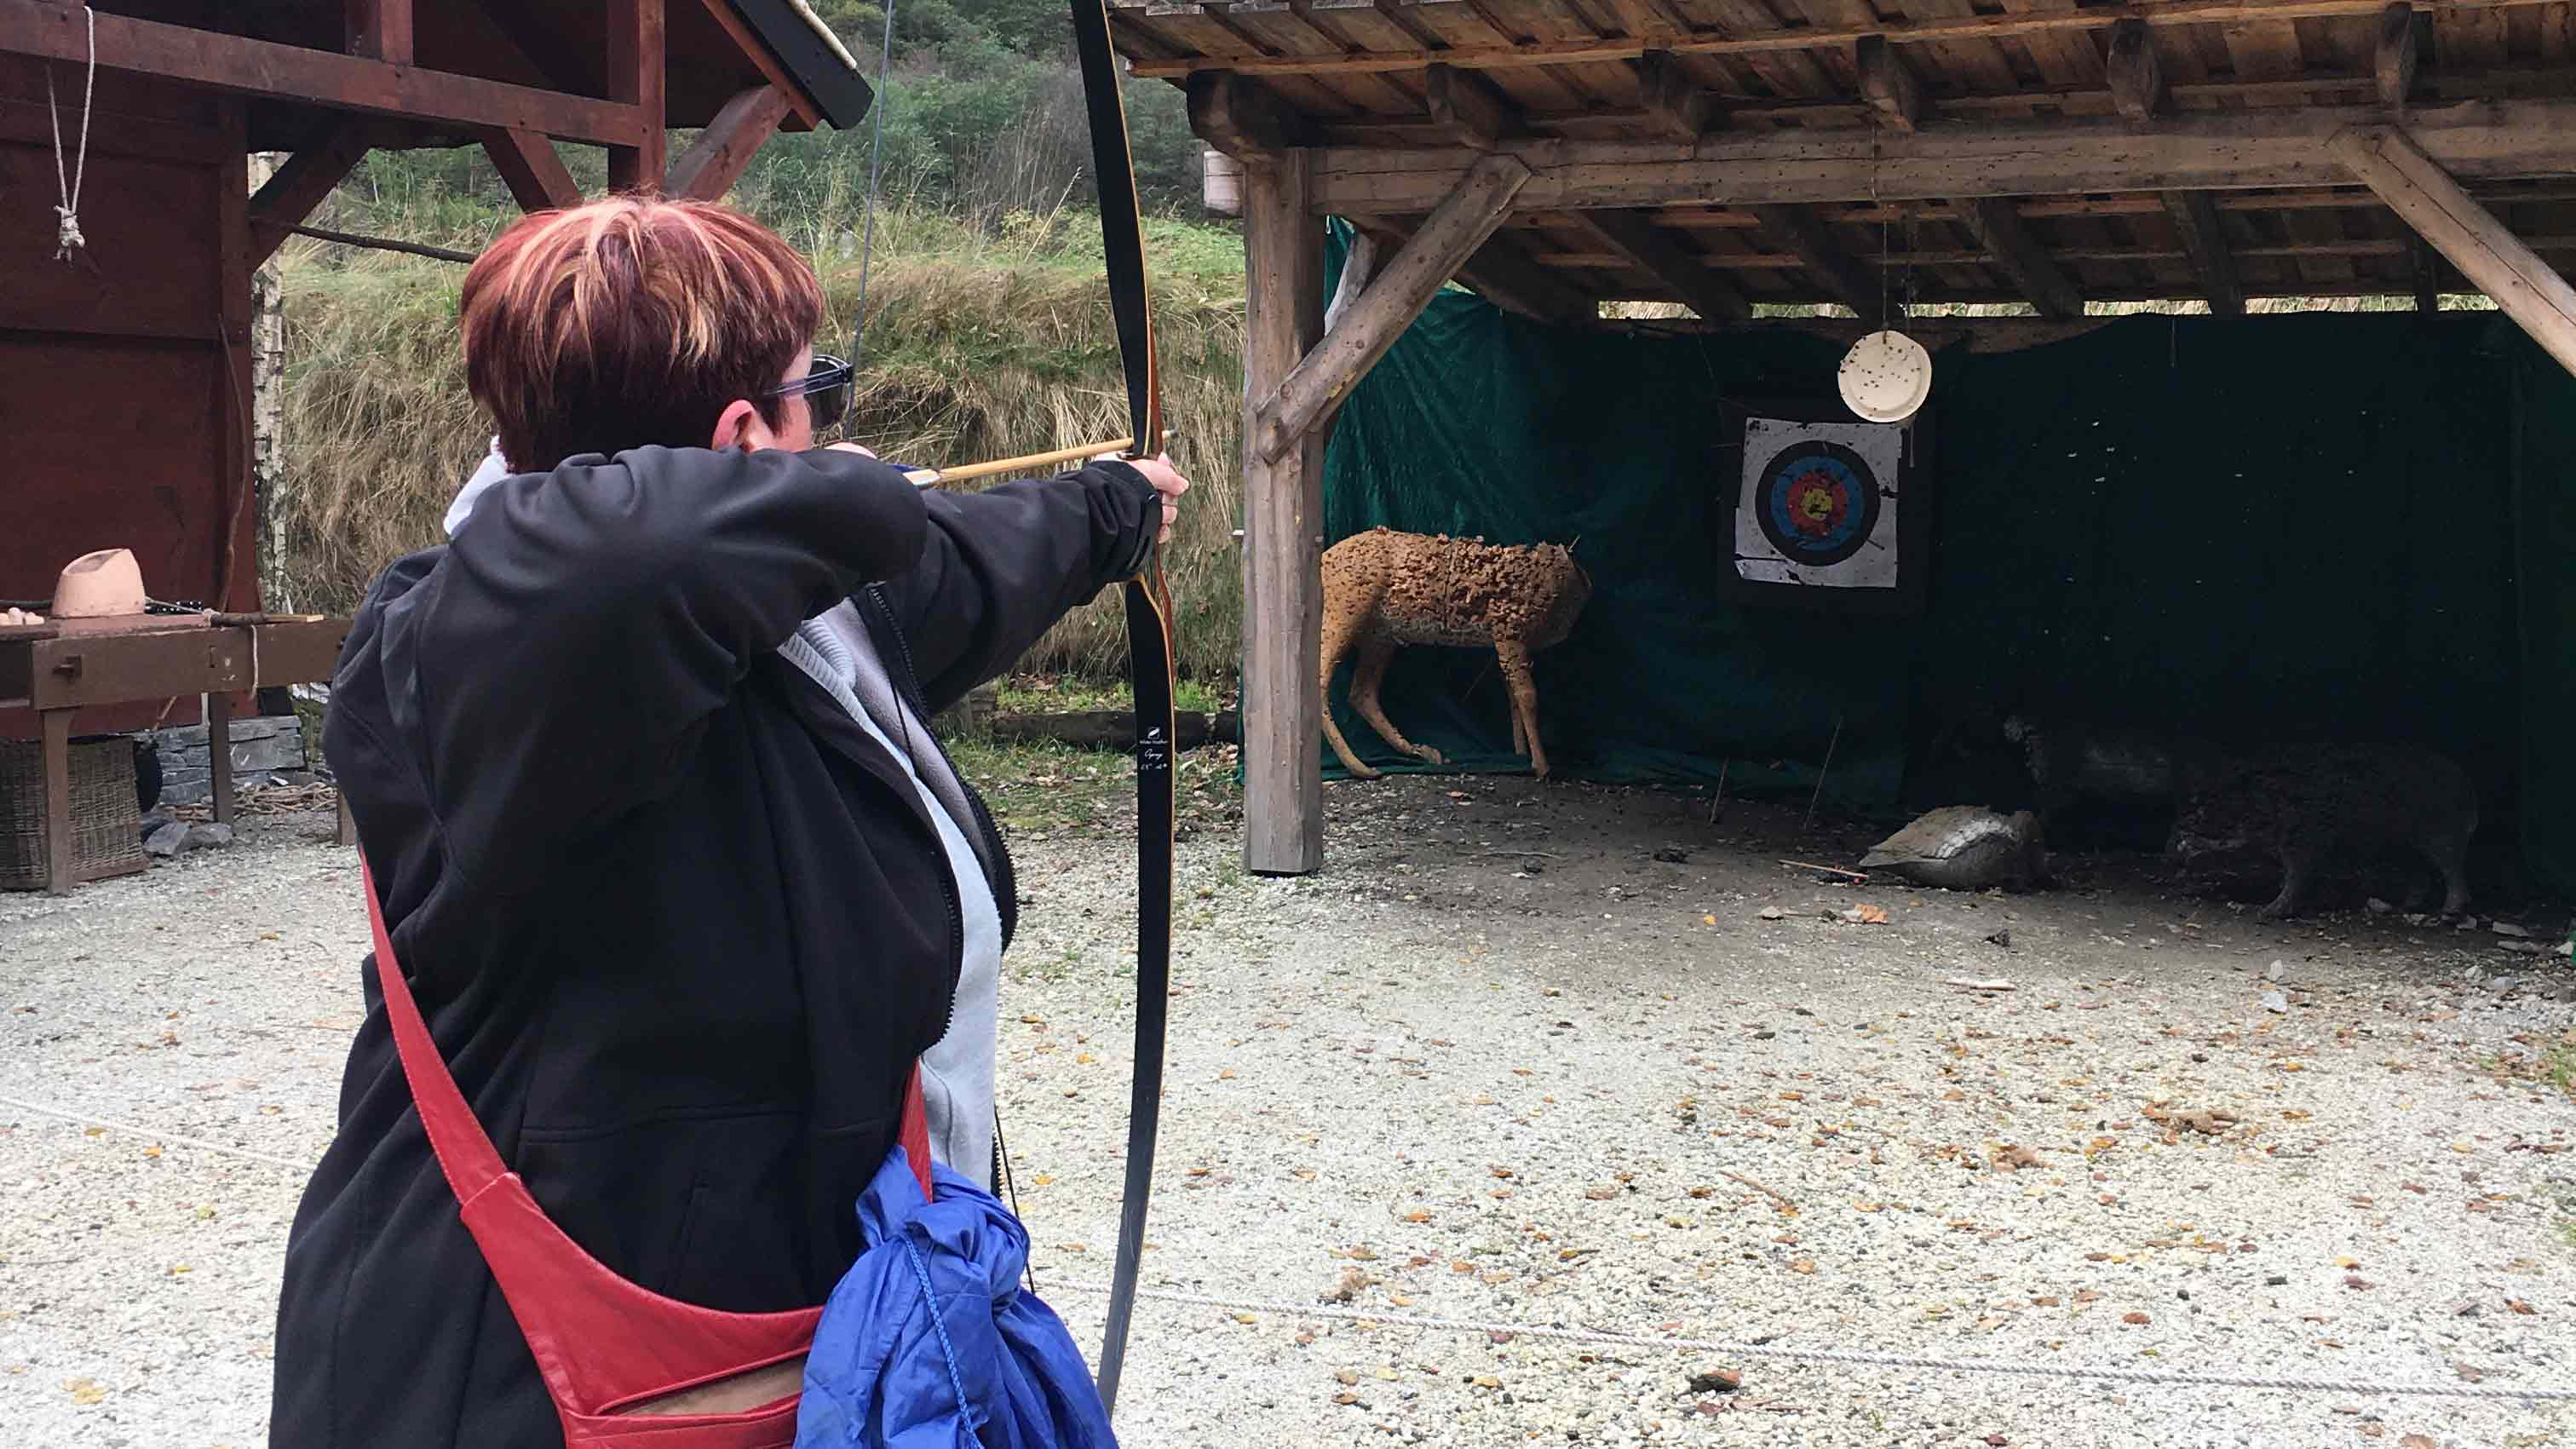 Showing off her archery skills